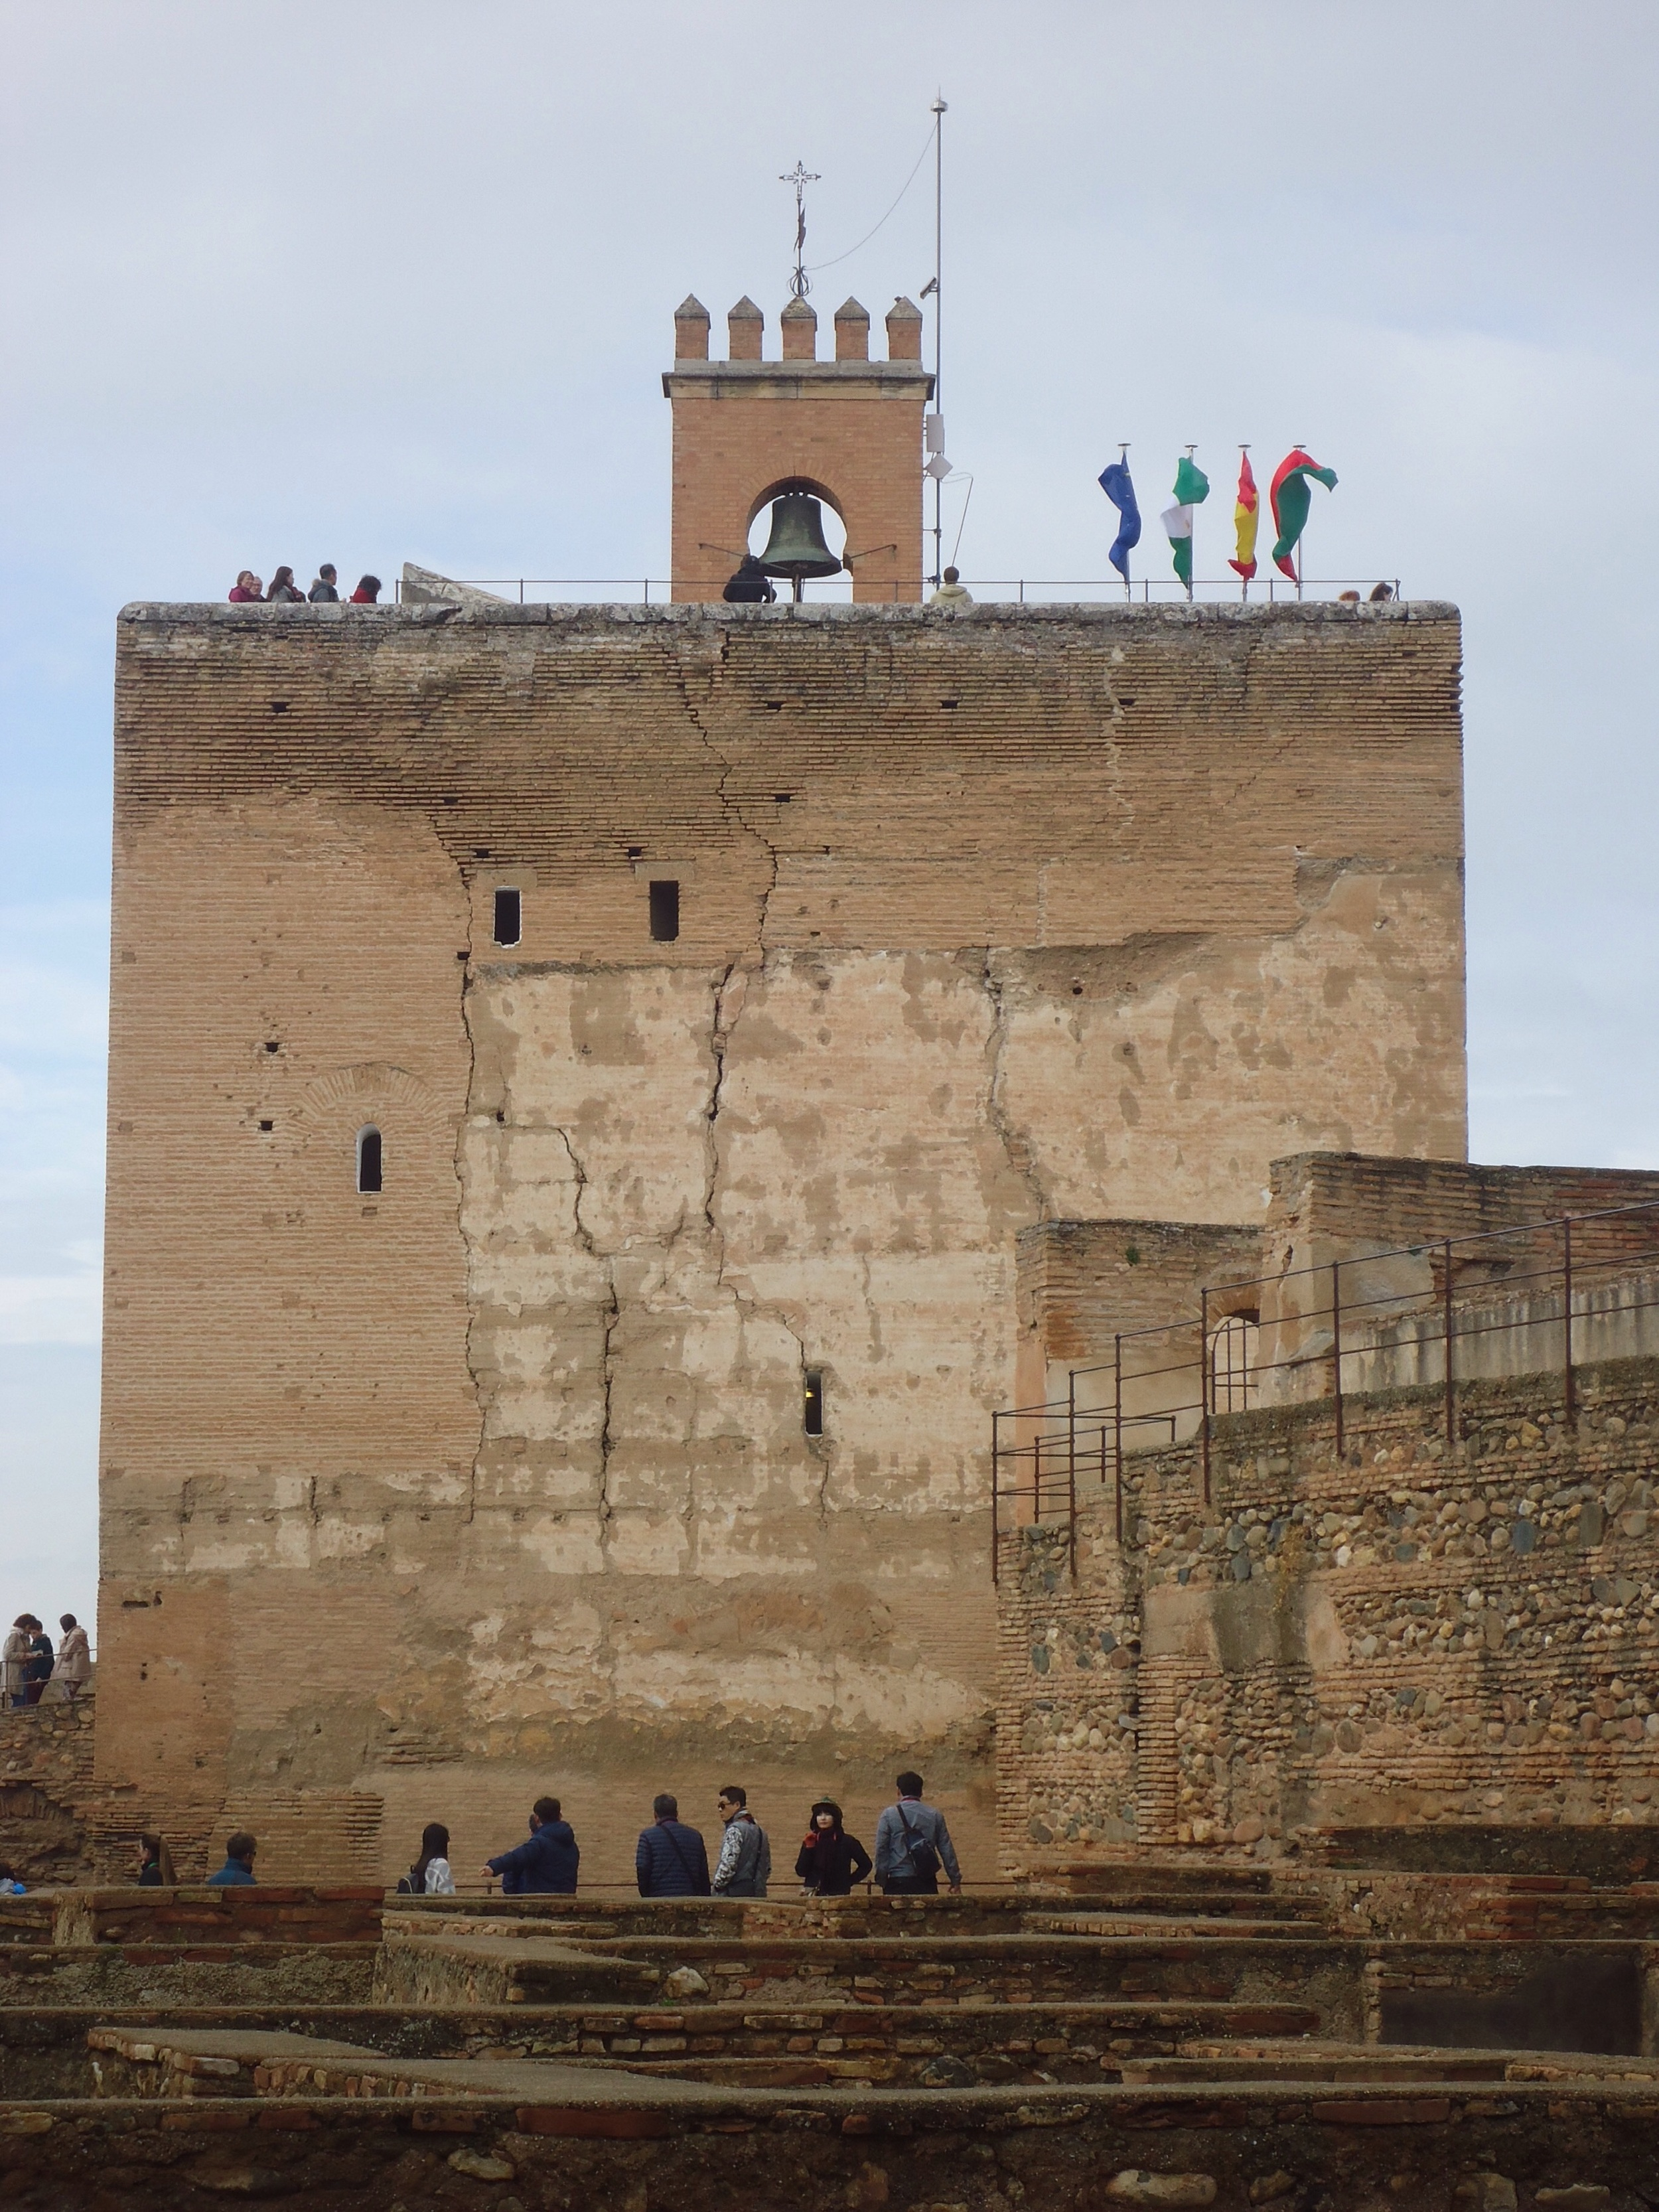 The imposing structure of the fort!